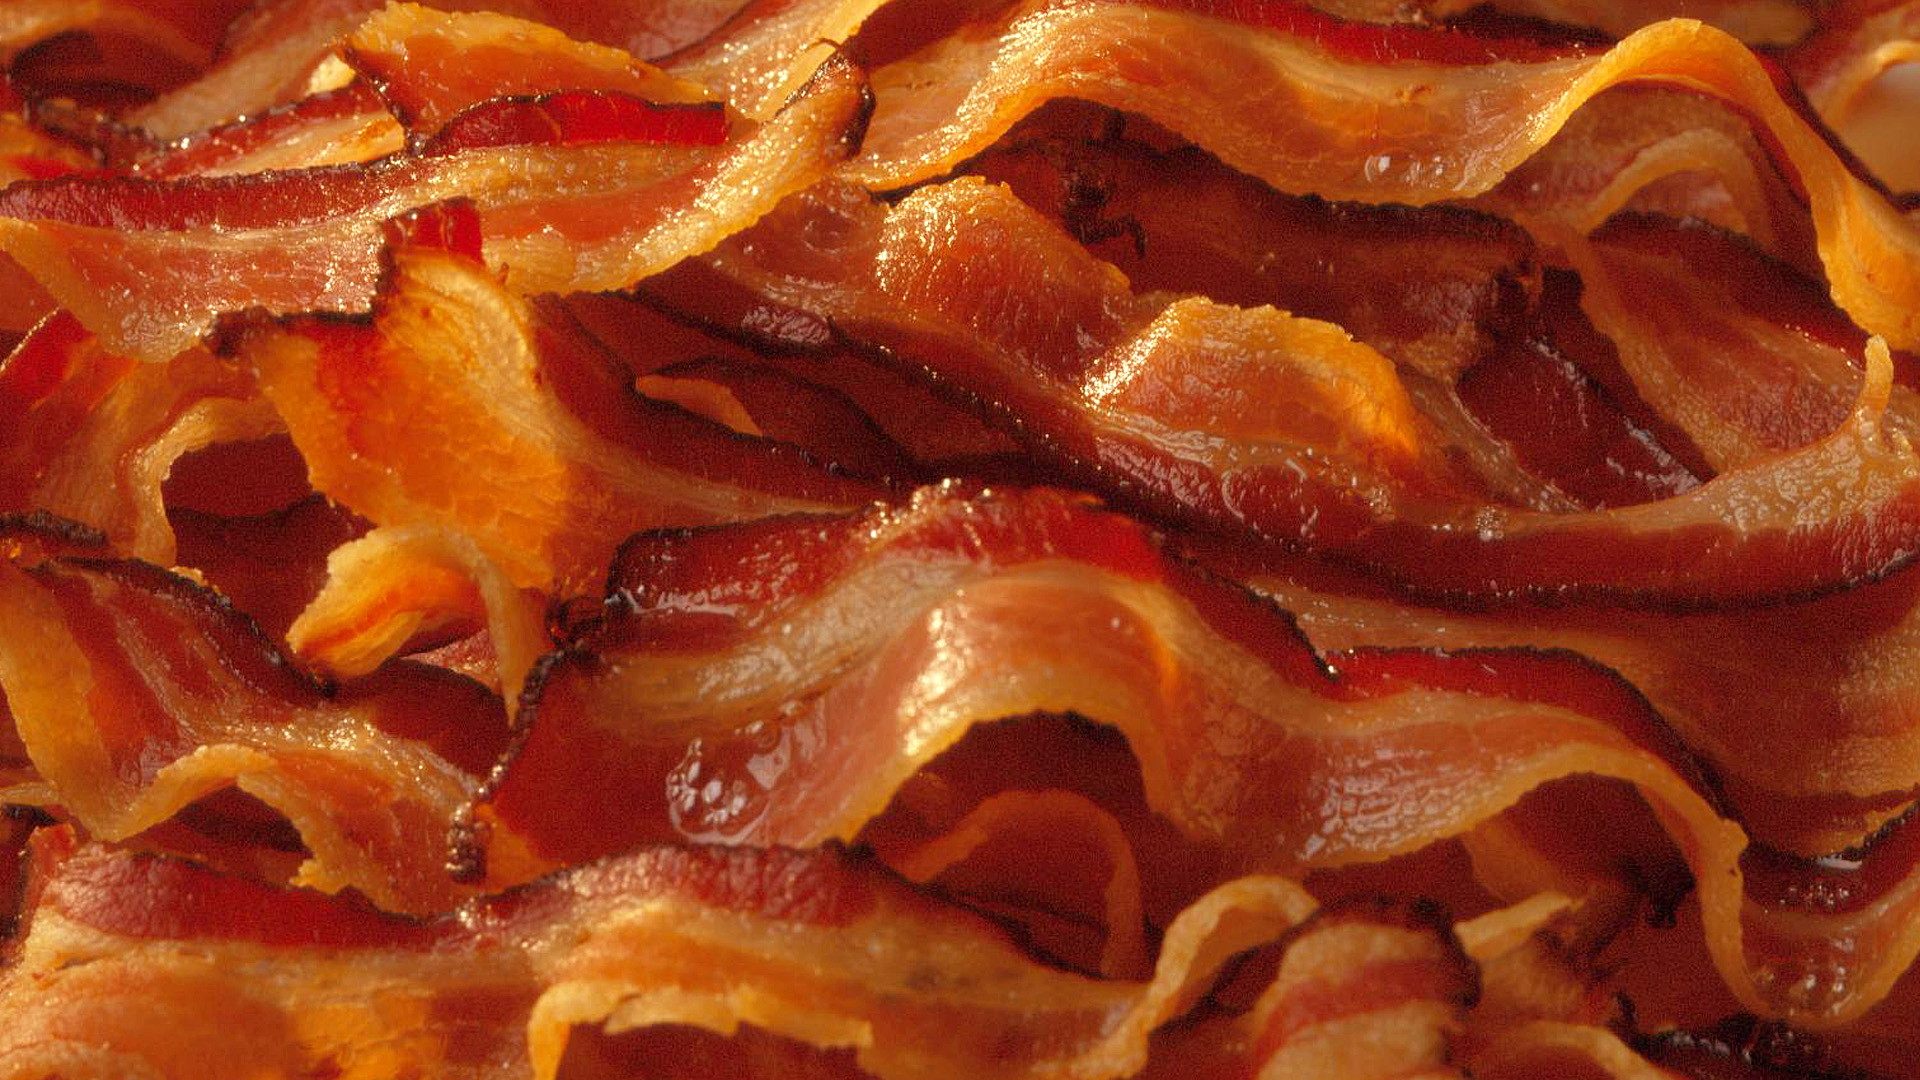 Bacon is about the only thing I know how to make in the kitchen.